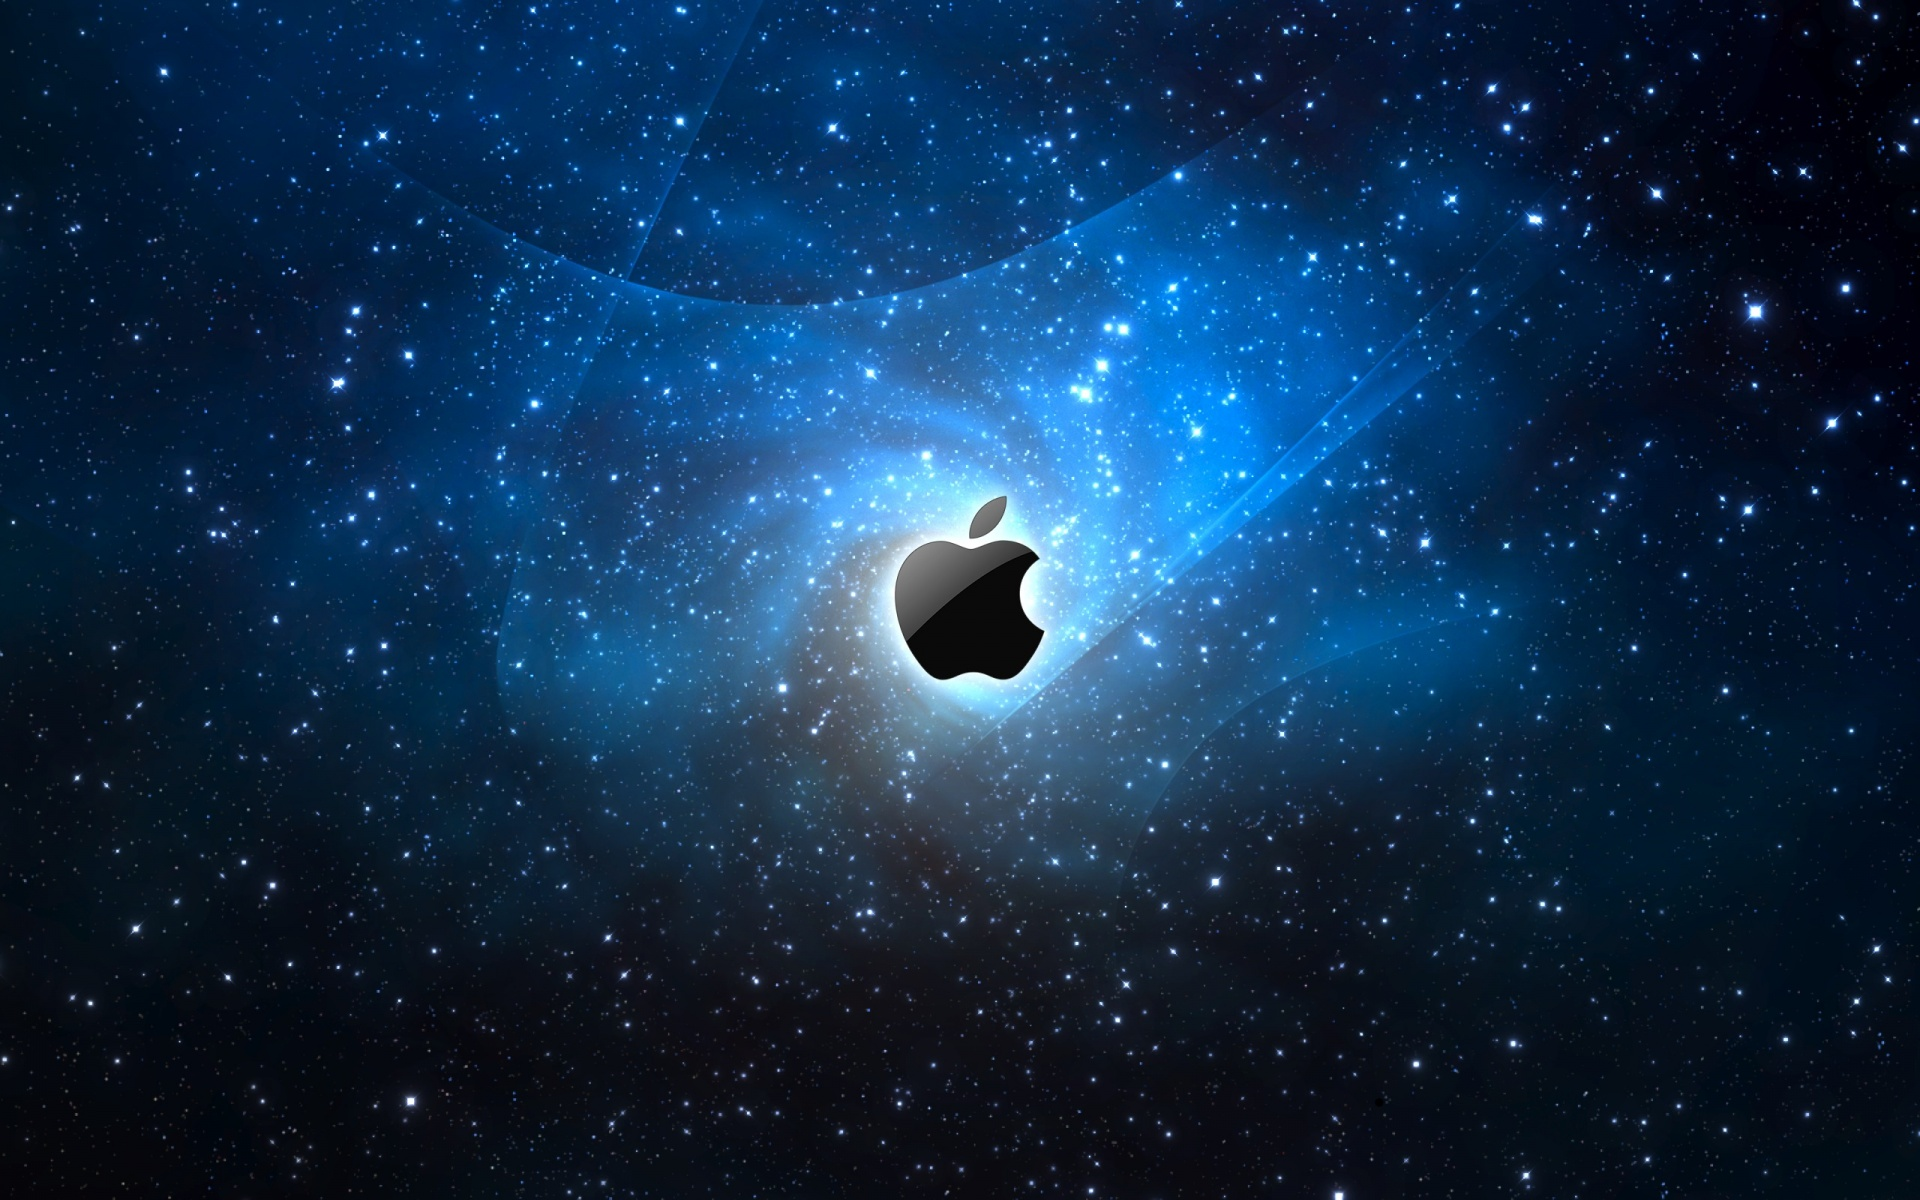 apple-logo-cool-space-wallpaper-wpc5802220